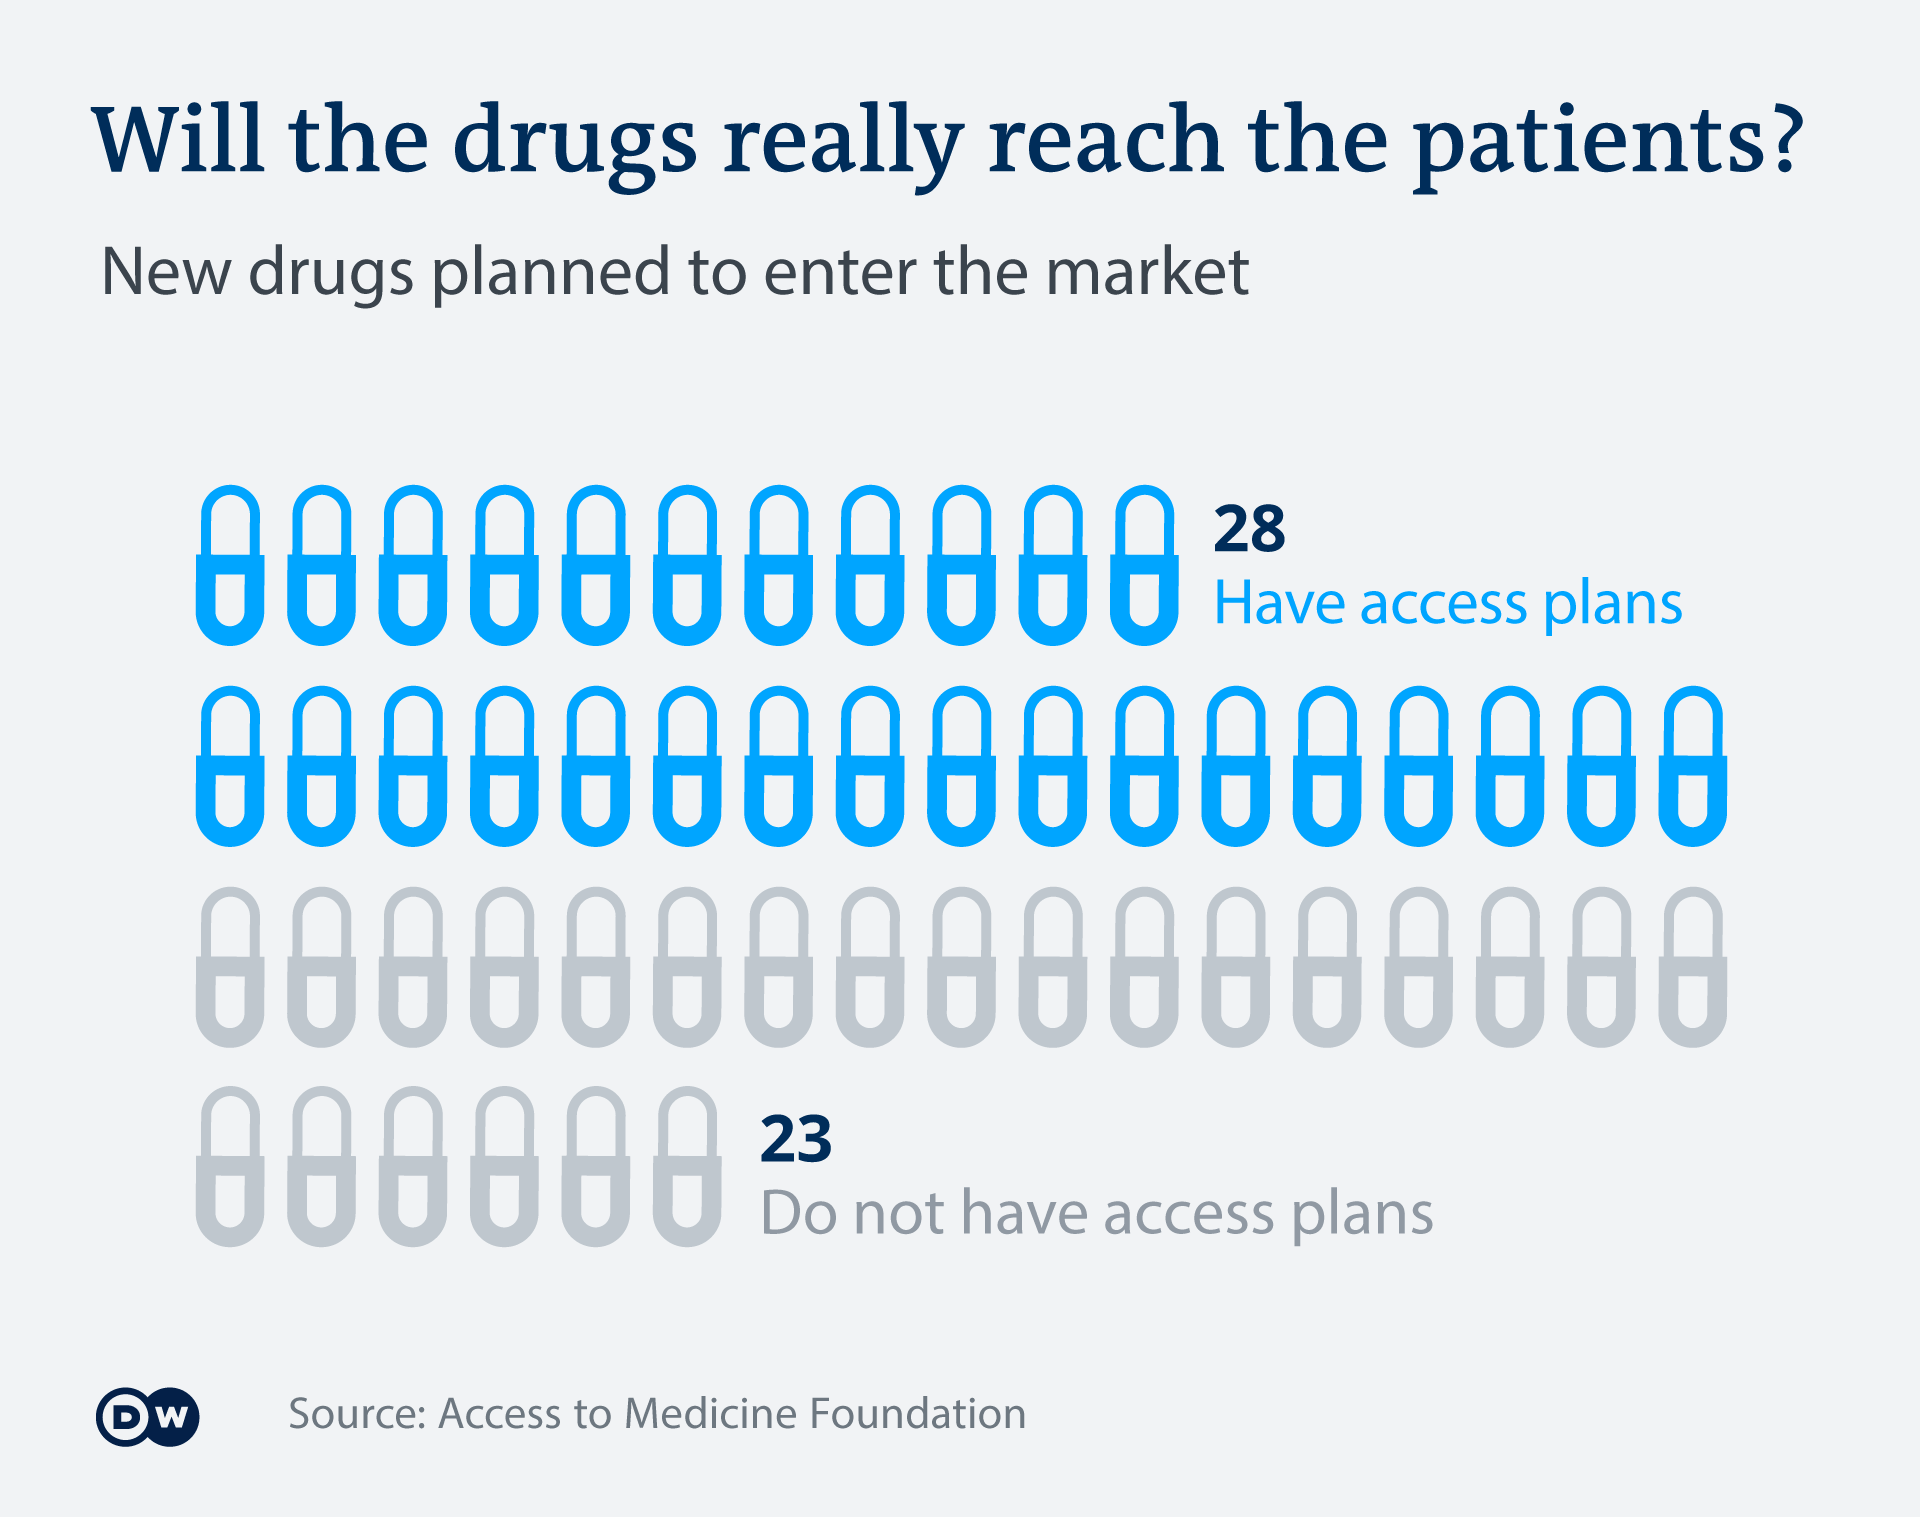 Will the drugs really reach the patients?